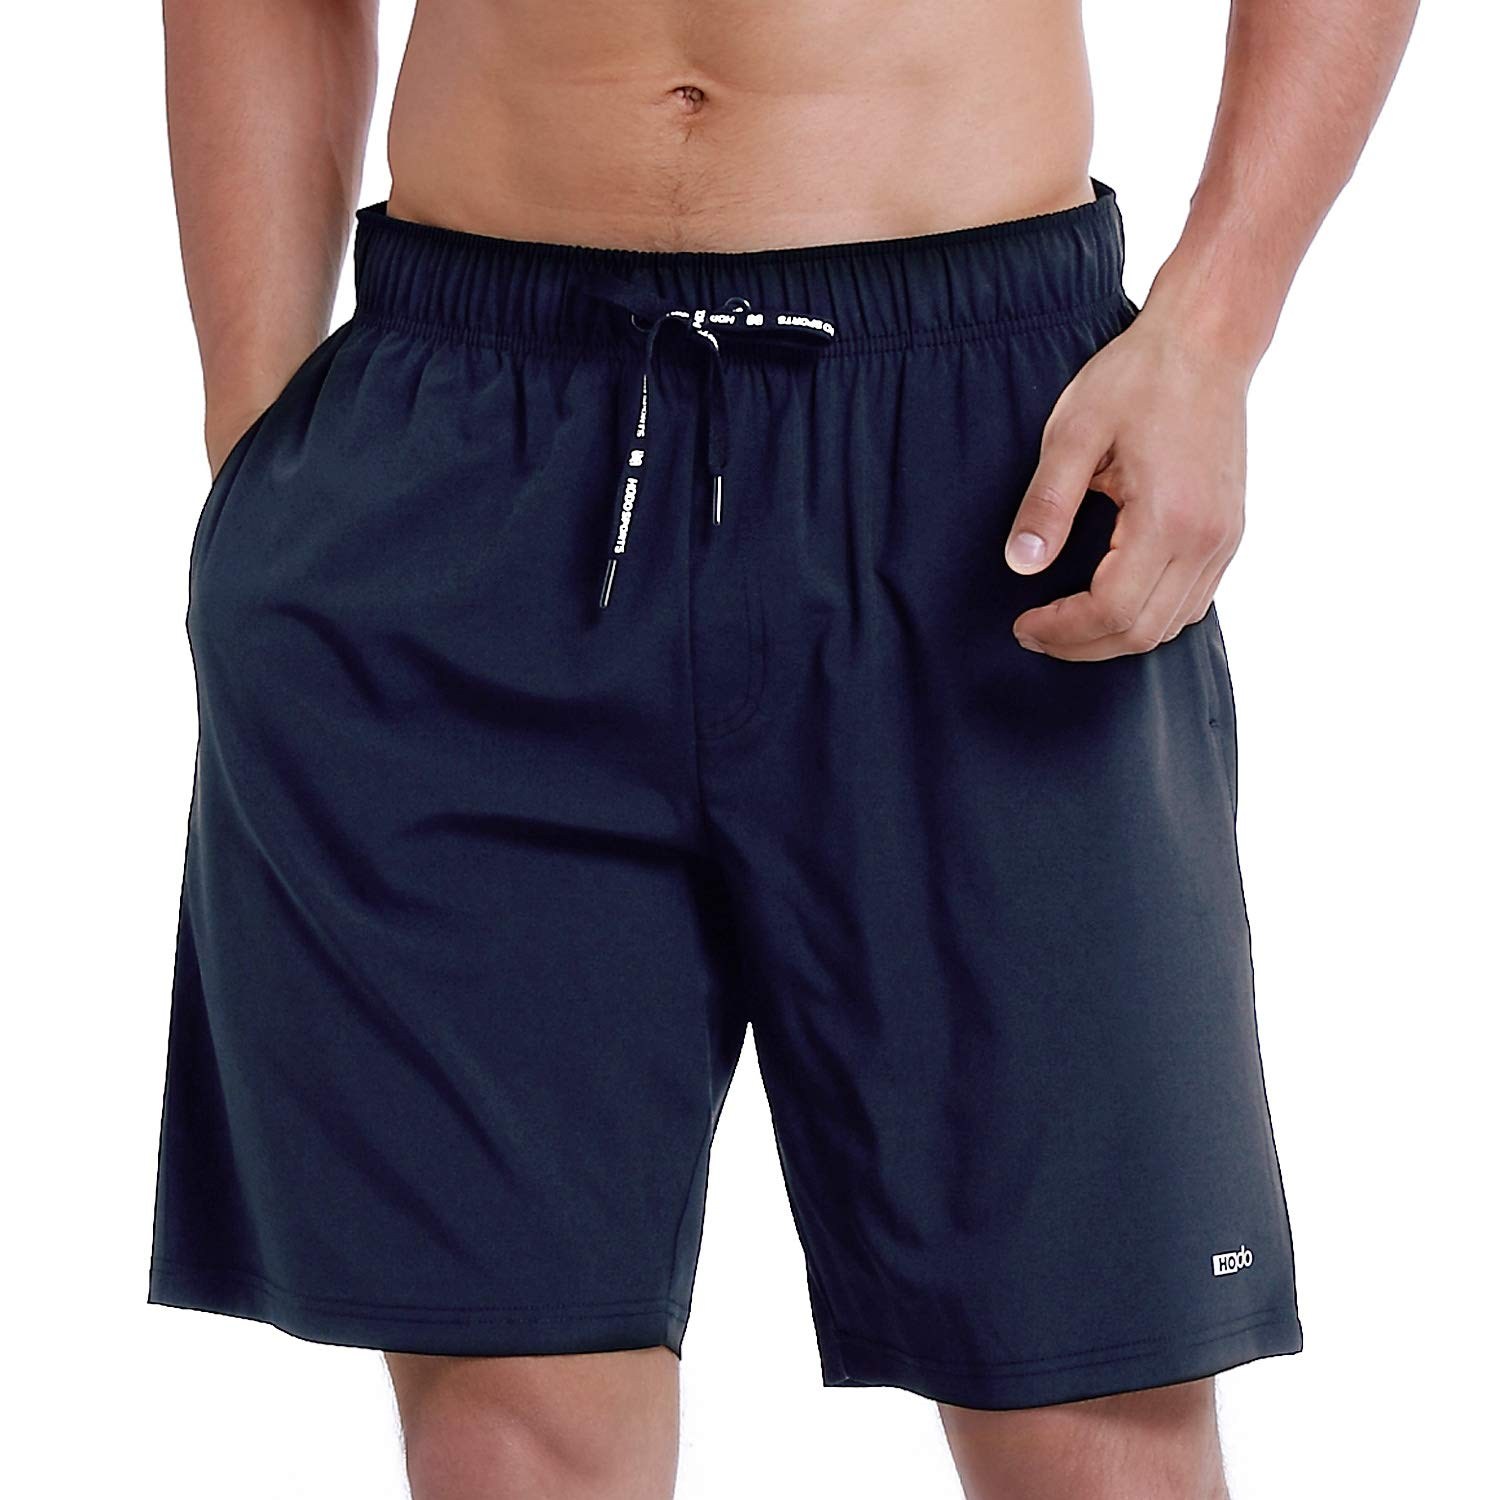 HOdo Mens Swim Trunks Quick Dry Beach Shorts Bathing Suits with Mesh Liner Navy-M by HOdo